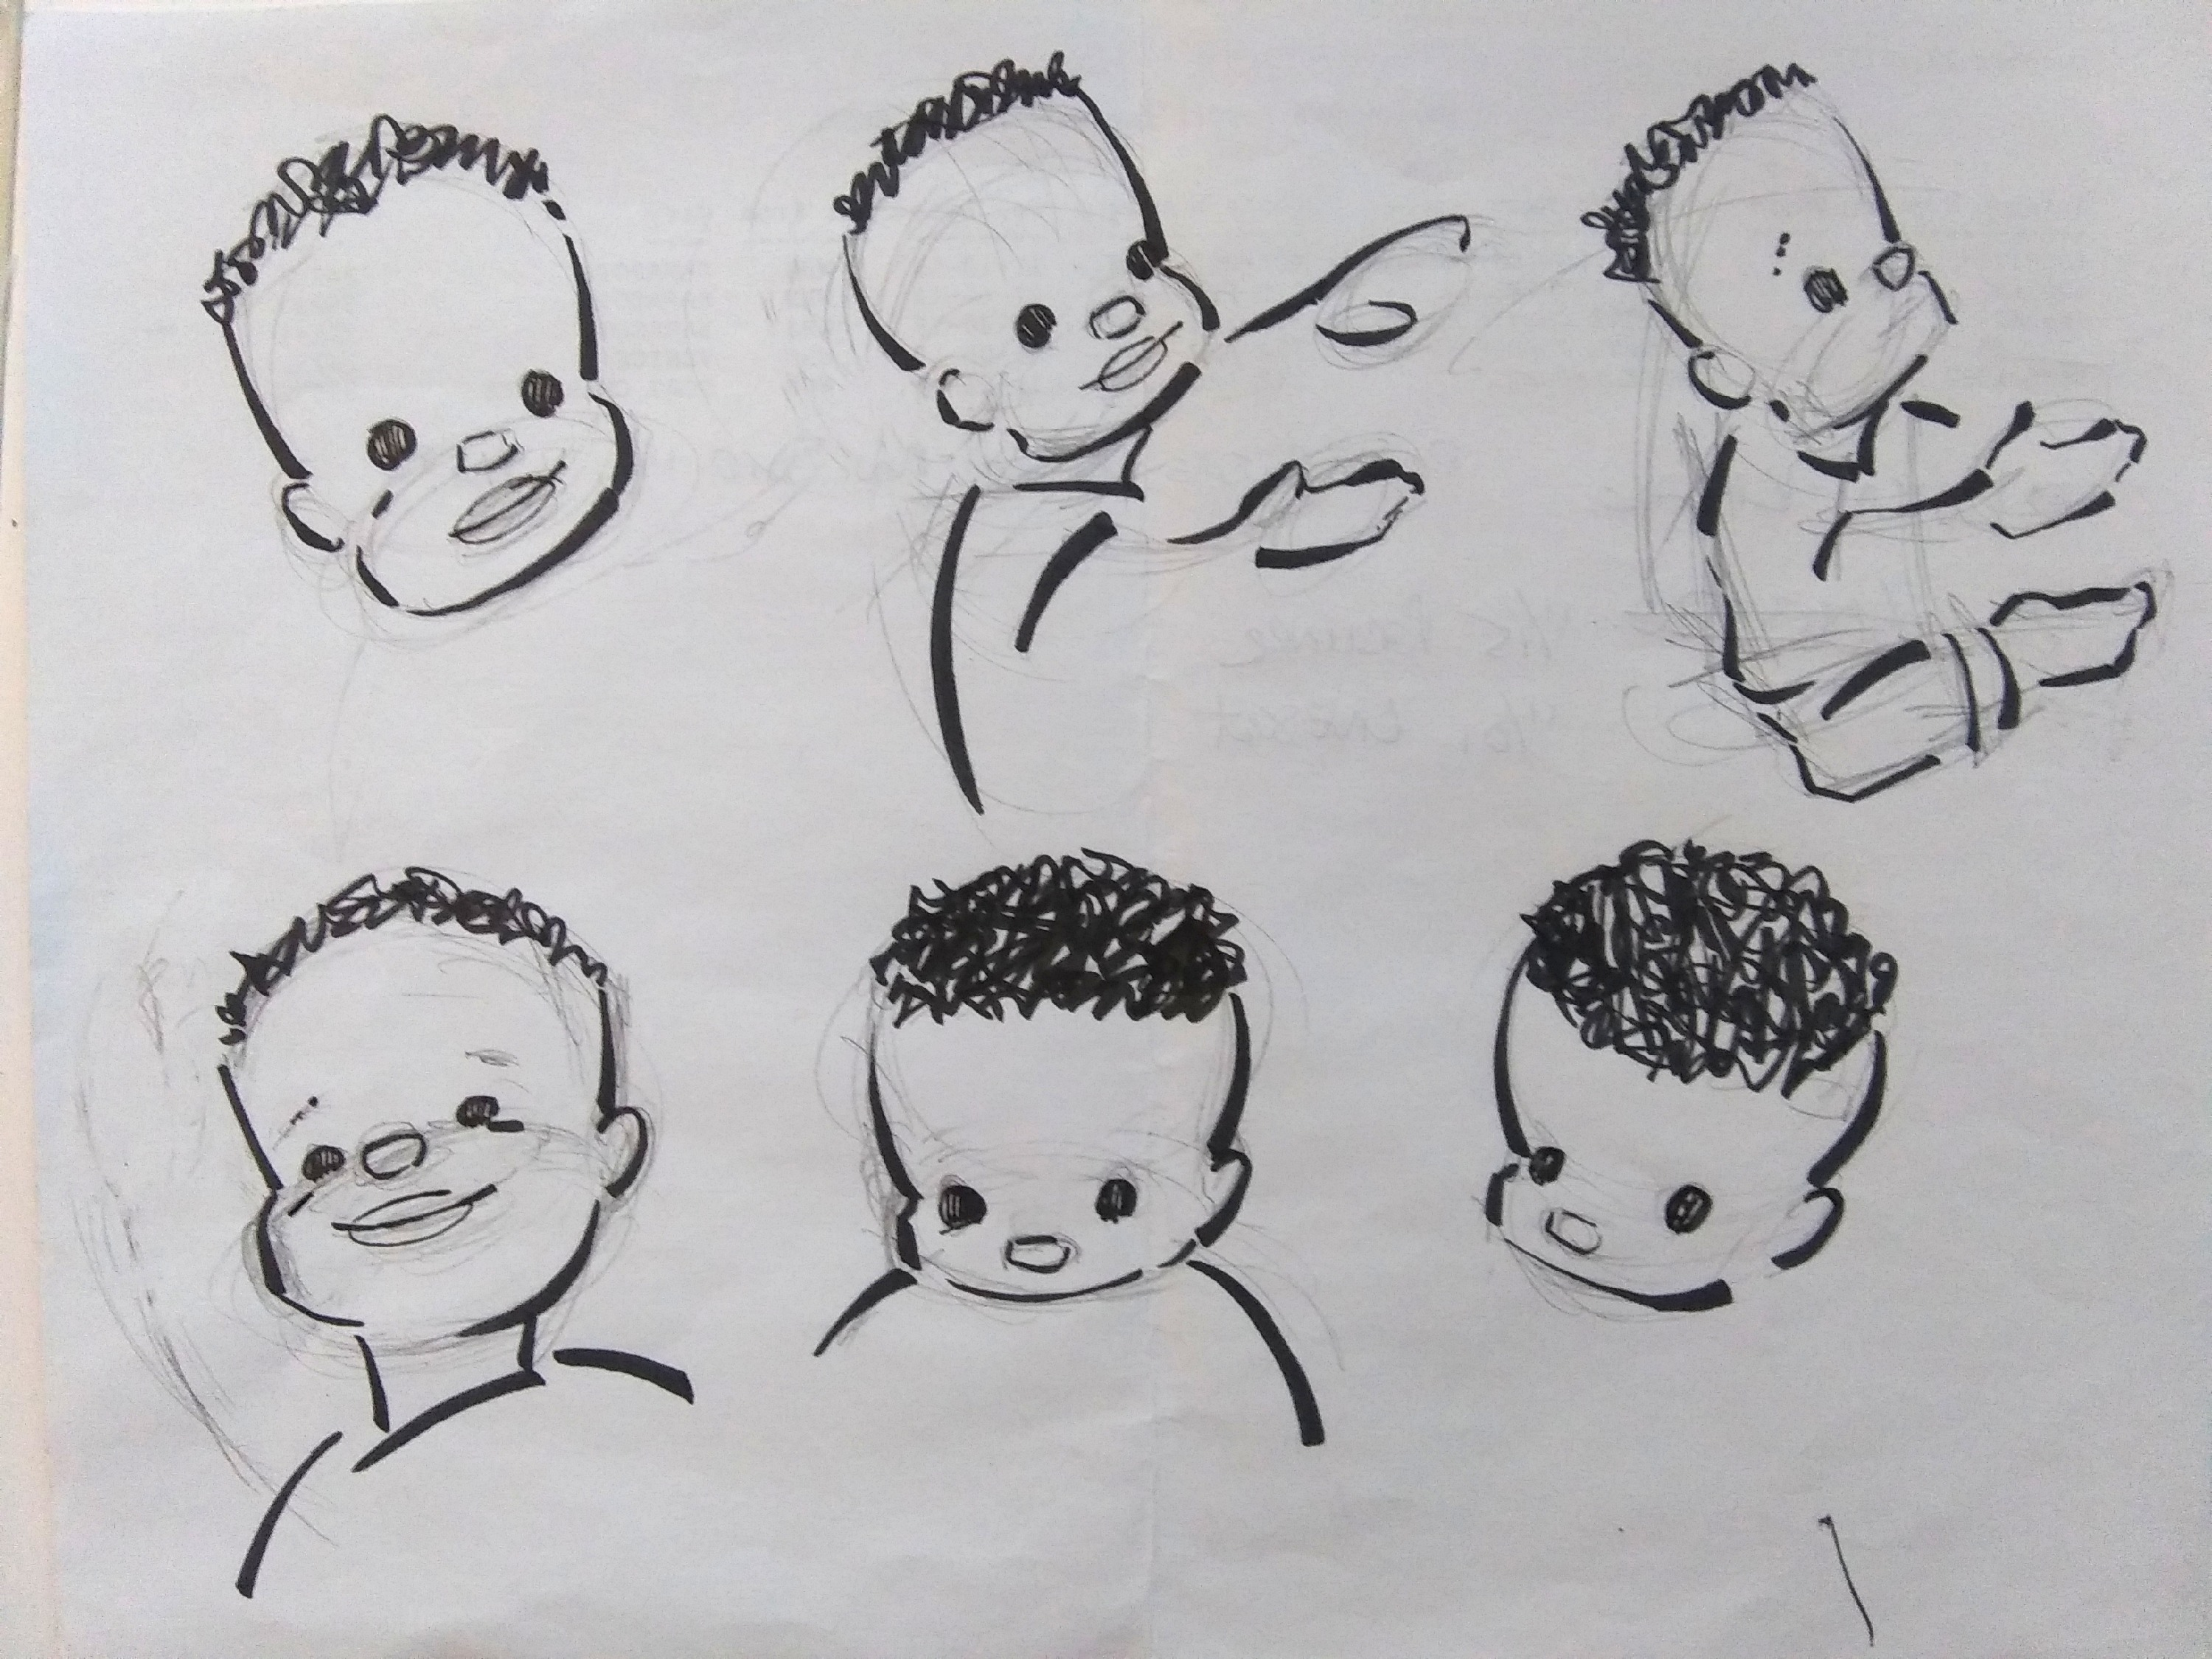 Sketches of Jimmy